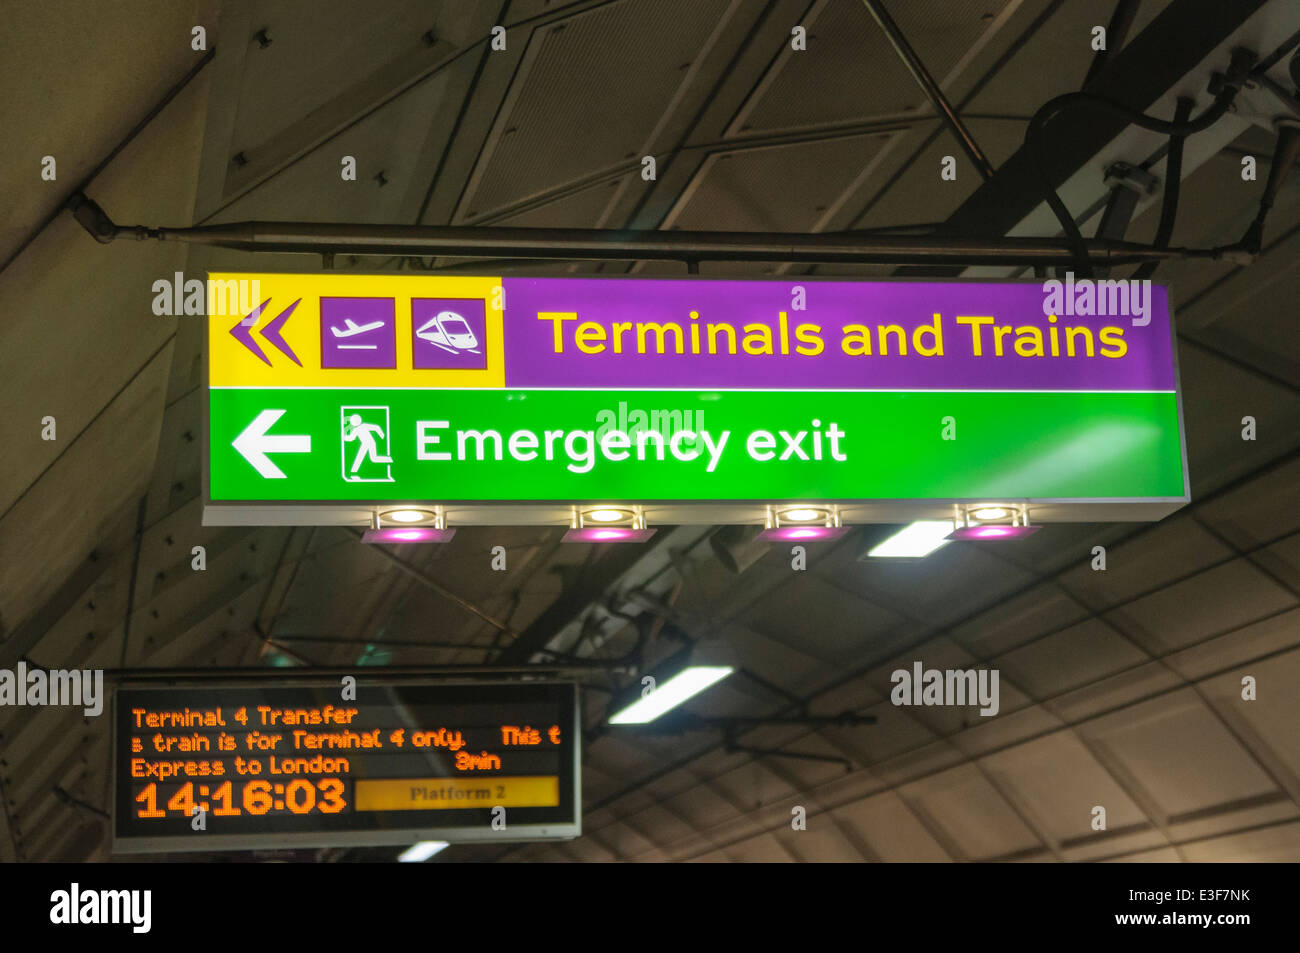 Sign to terminals and trains at Heathrow Express, Heathrow Airport - Stock Image